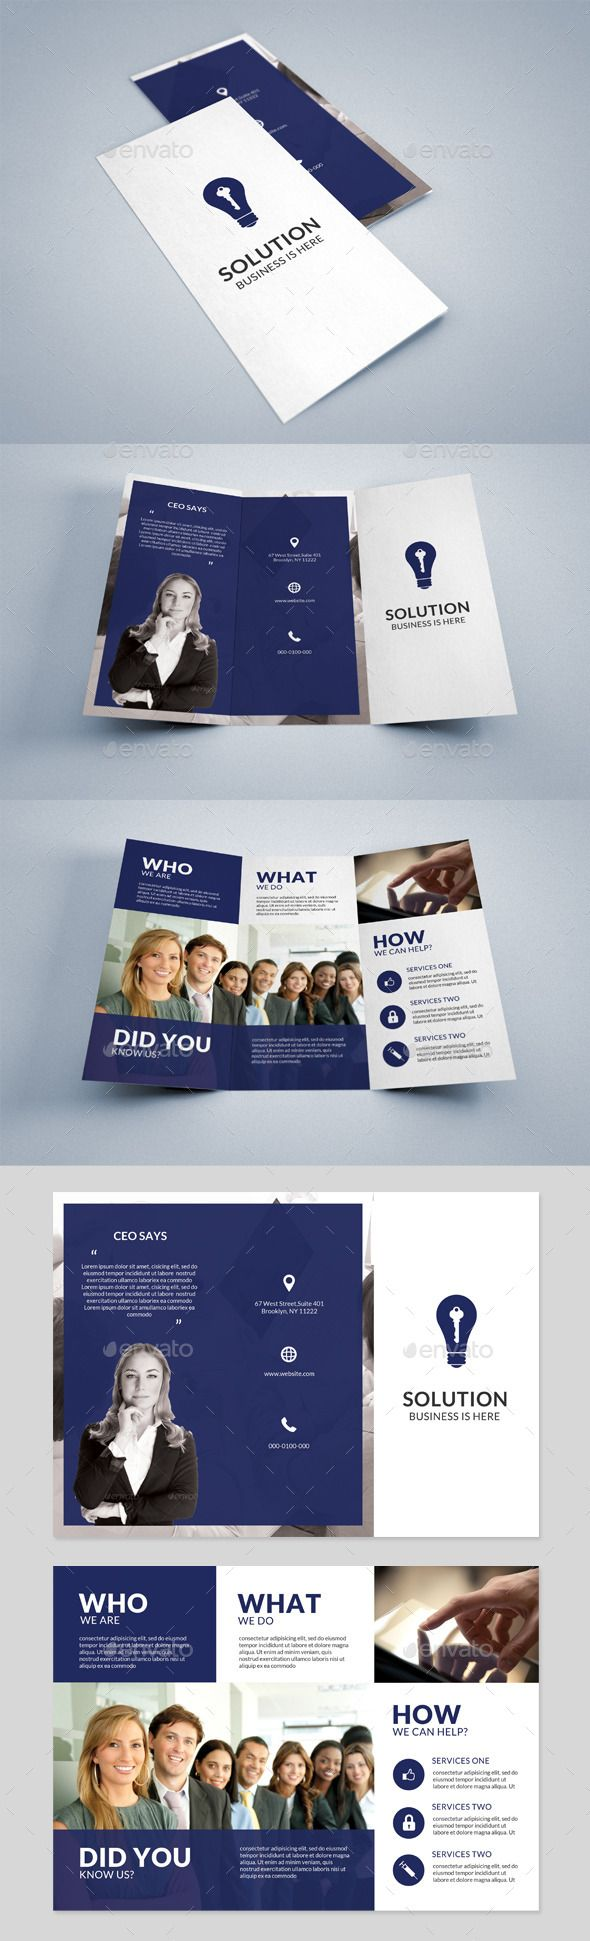 Corporate Tri-Fold Brochure - Corporate Brochure Template PSD. Download here: http://graphicriver.net/item/corporate-trifold-brochure/12820231?s_rank=1781&ref=yinkira